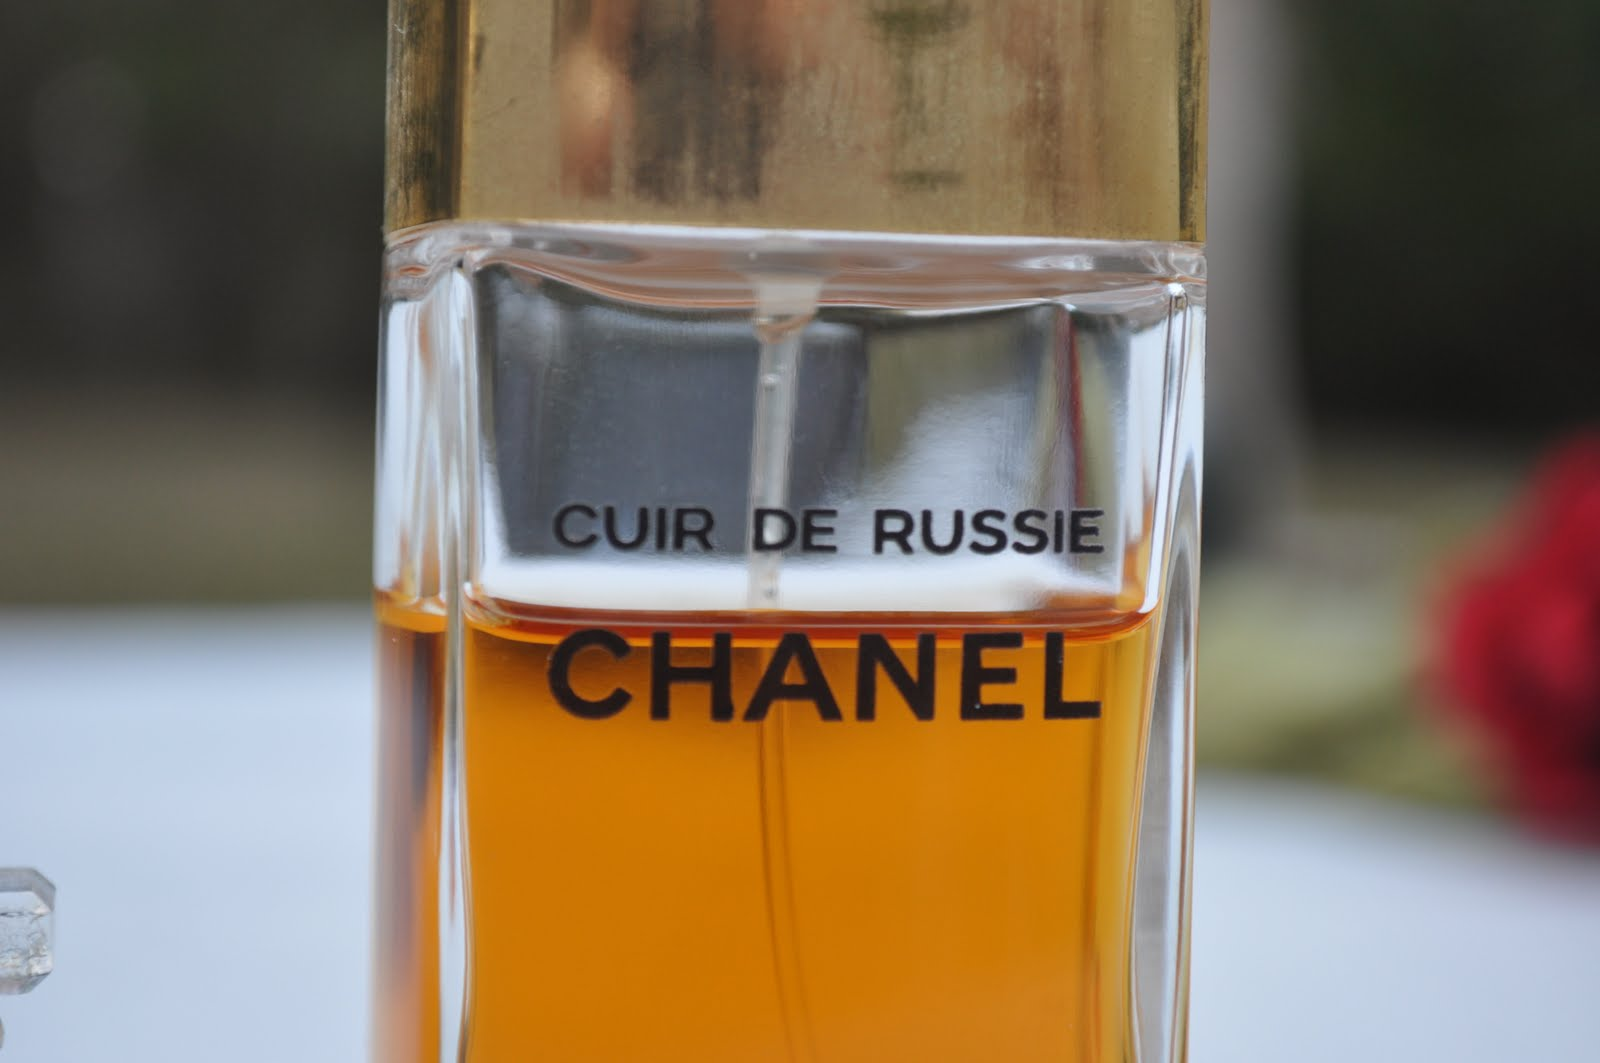 chanel perfume photos vintage cristalle and cuir de russie the smell of bliss niche perfume. Black Bedroom Furniture Sets. Home Design Ideas